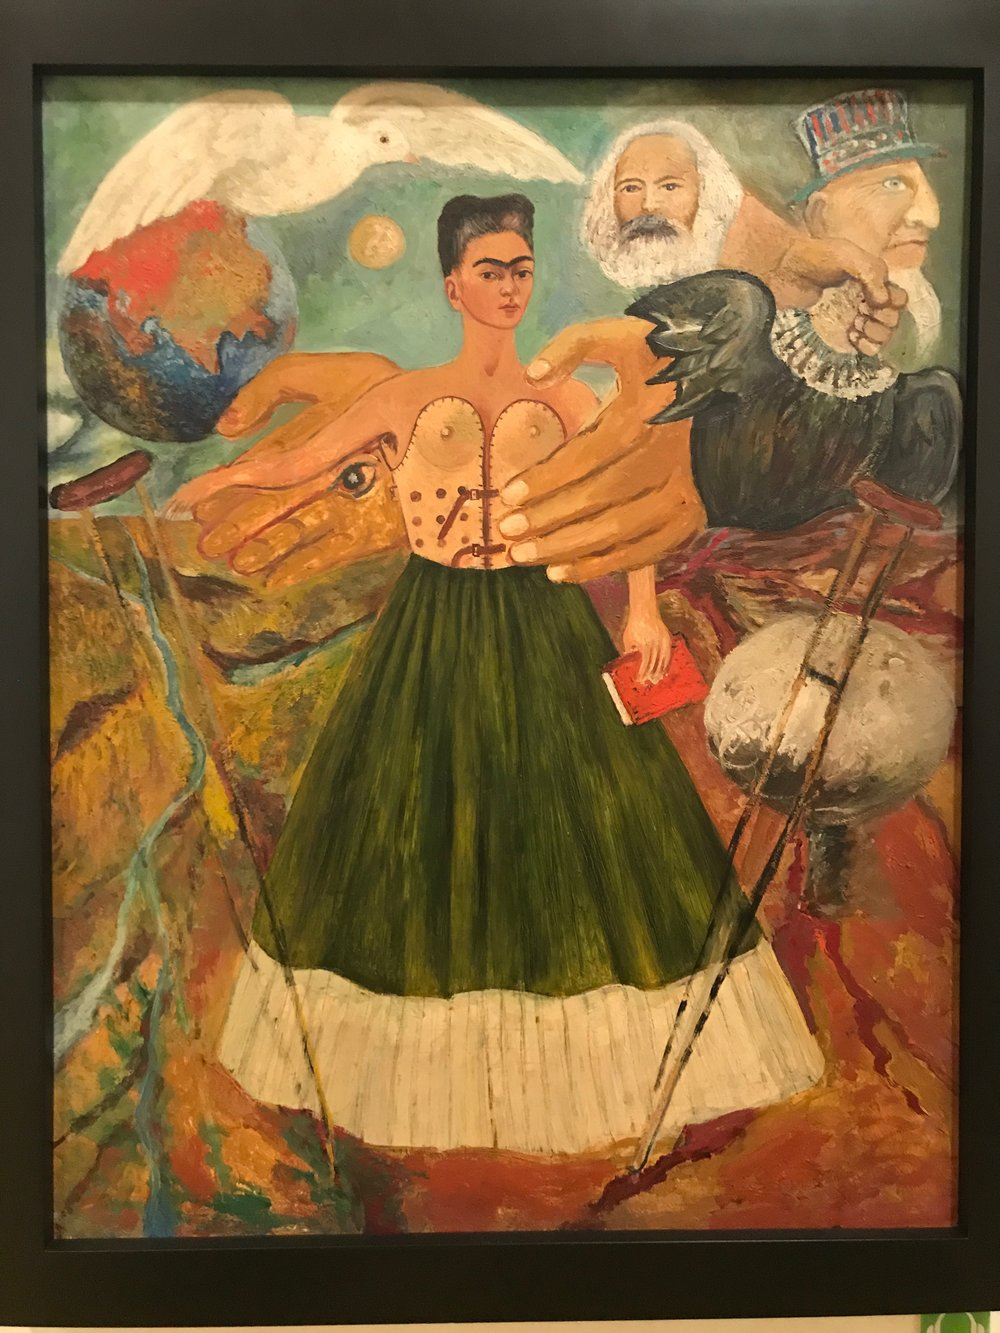 Marxism Will Give Health to the Sick  by Frida Kahlo, 1954